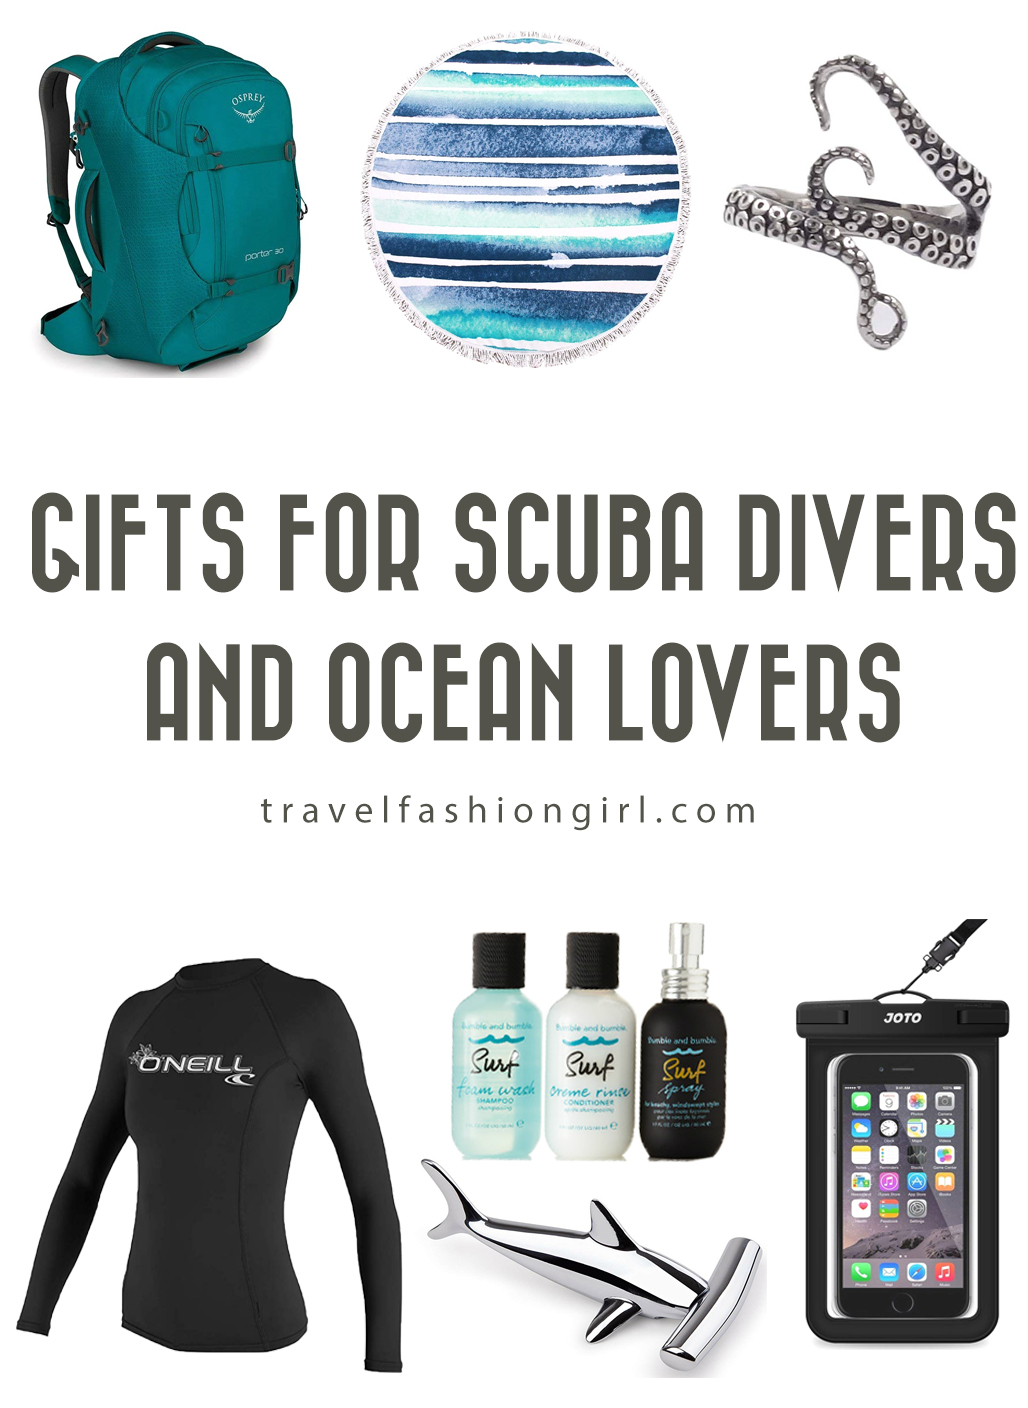 gifts-for-scuba-divers